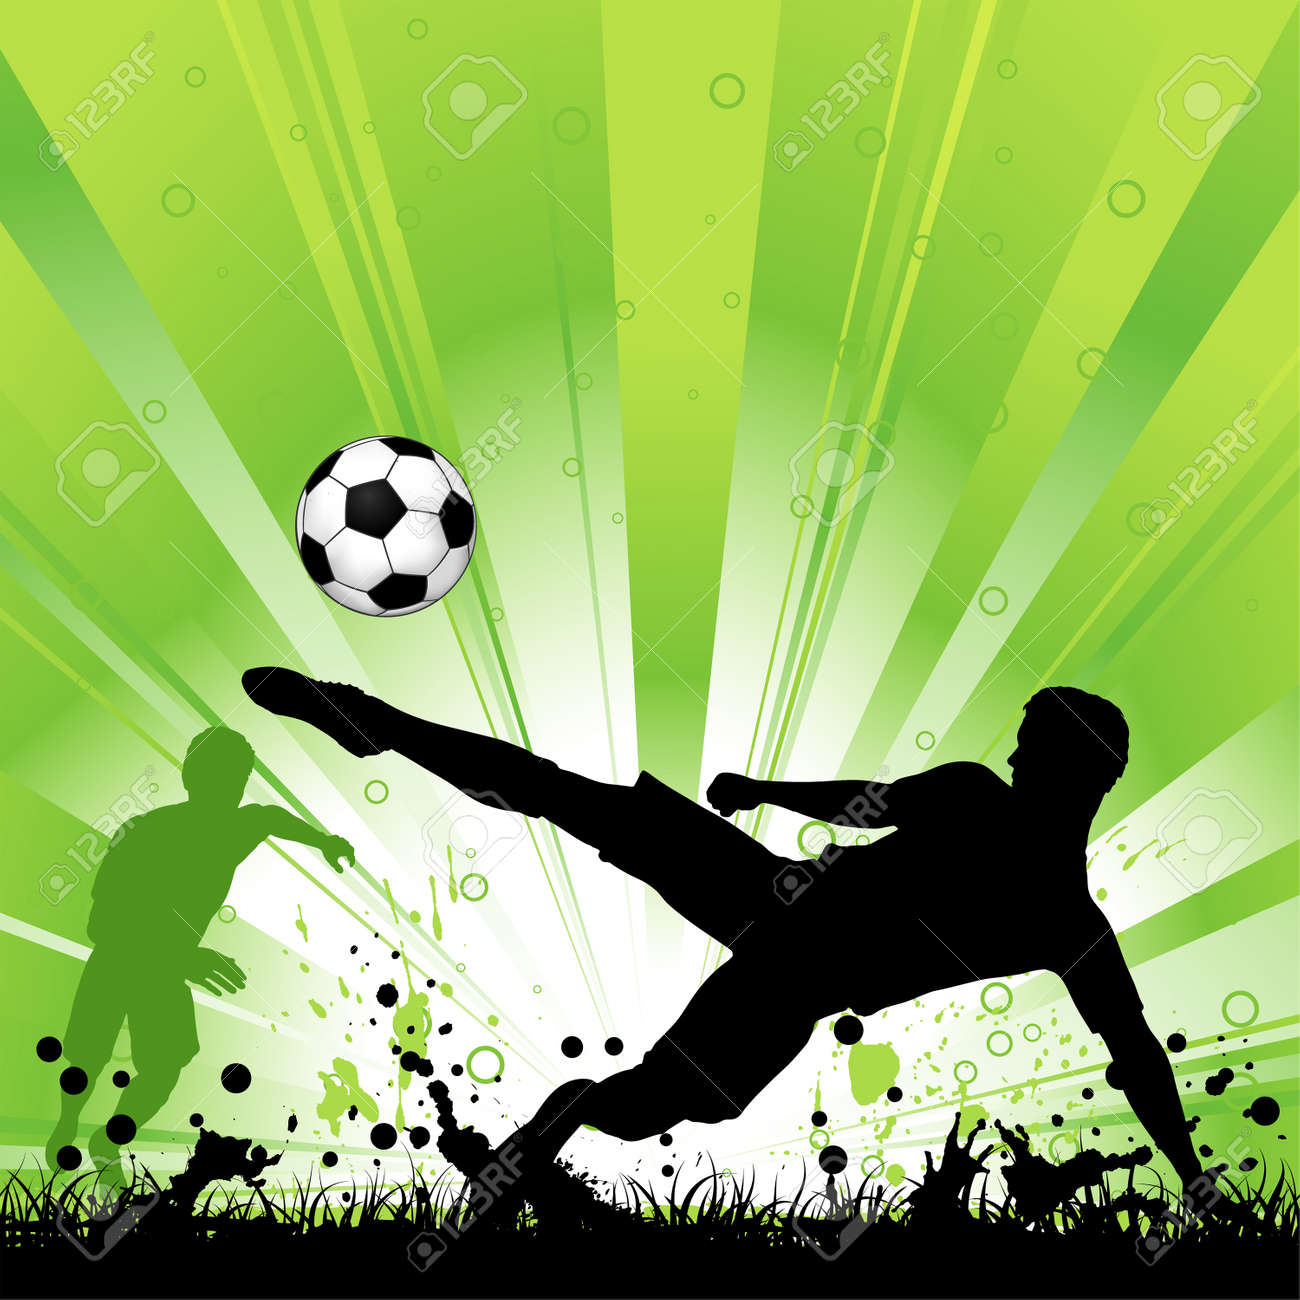 Soccer Player with ball on grunge background, element for design, vector illustration - 10475820